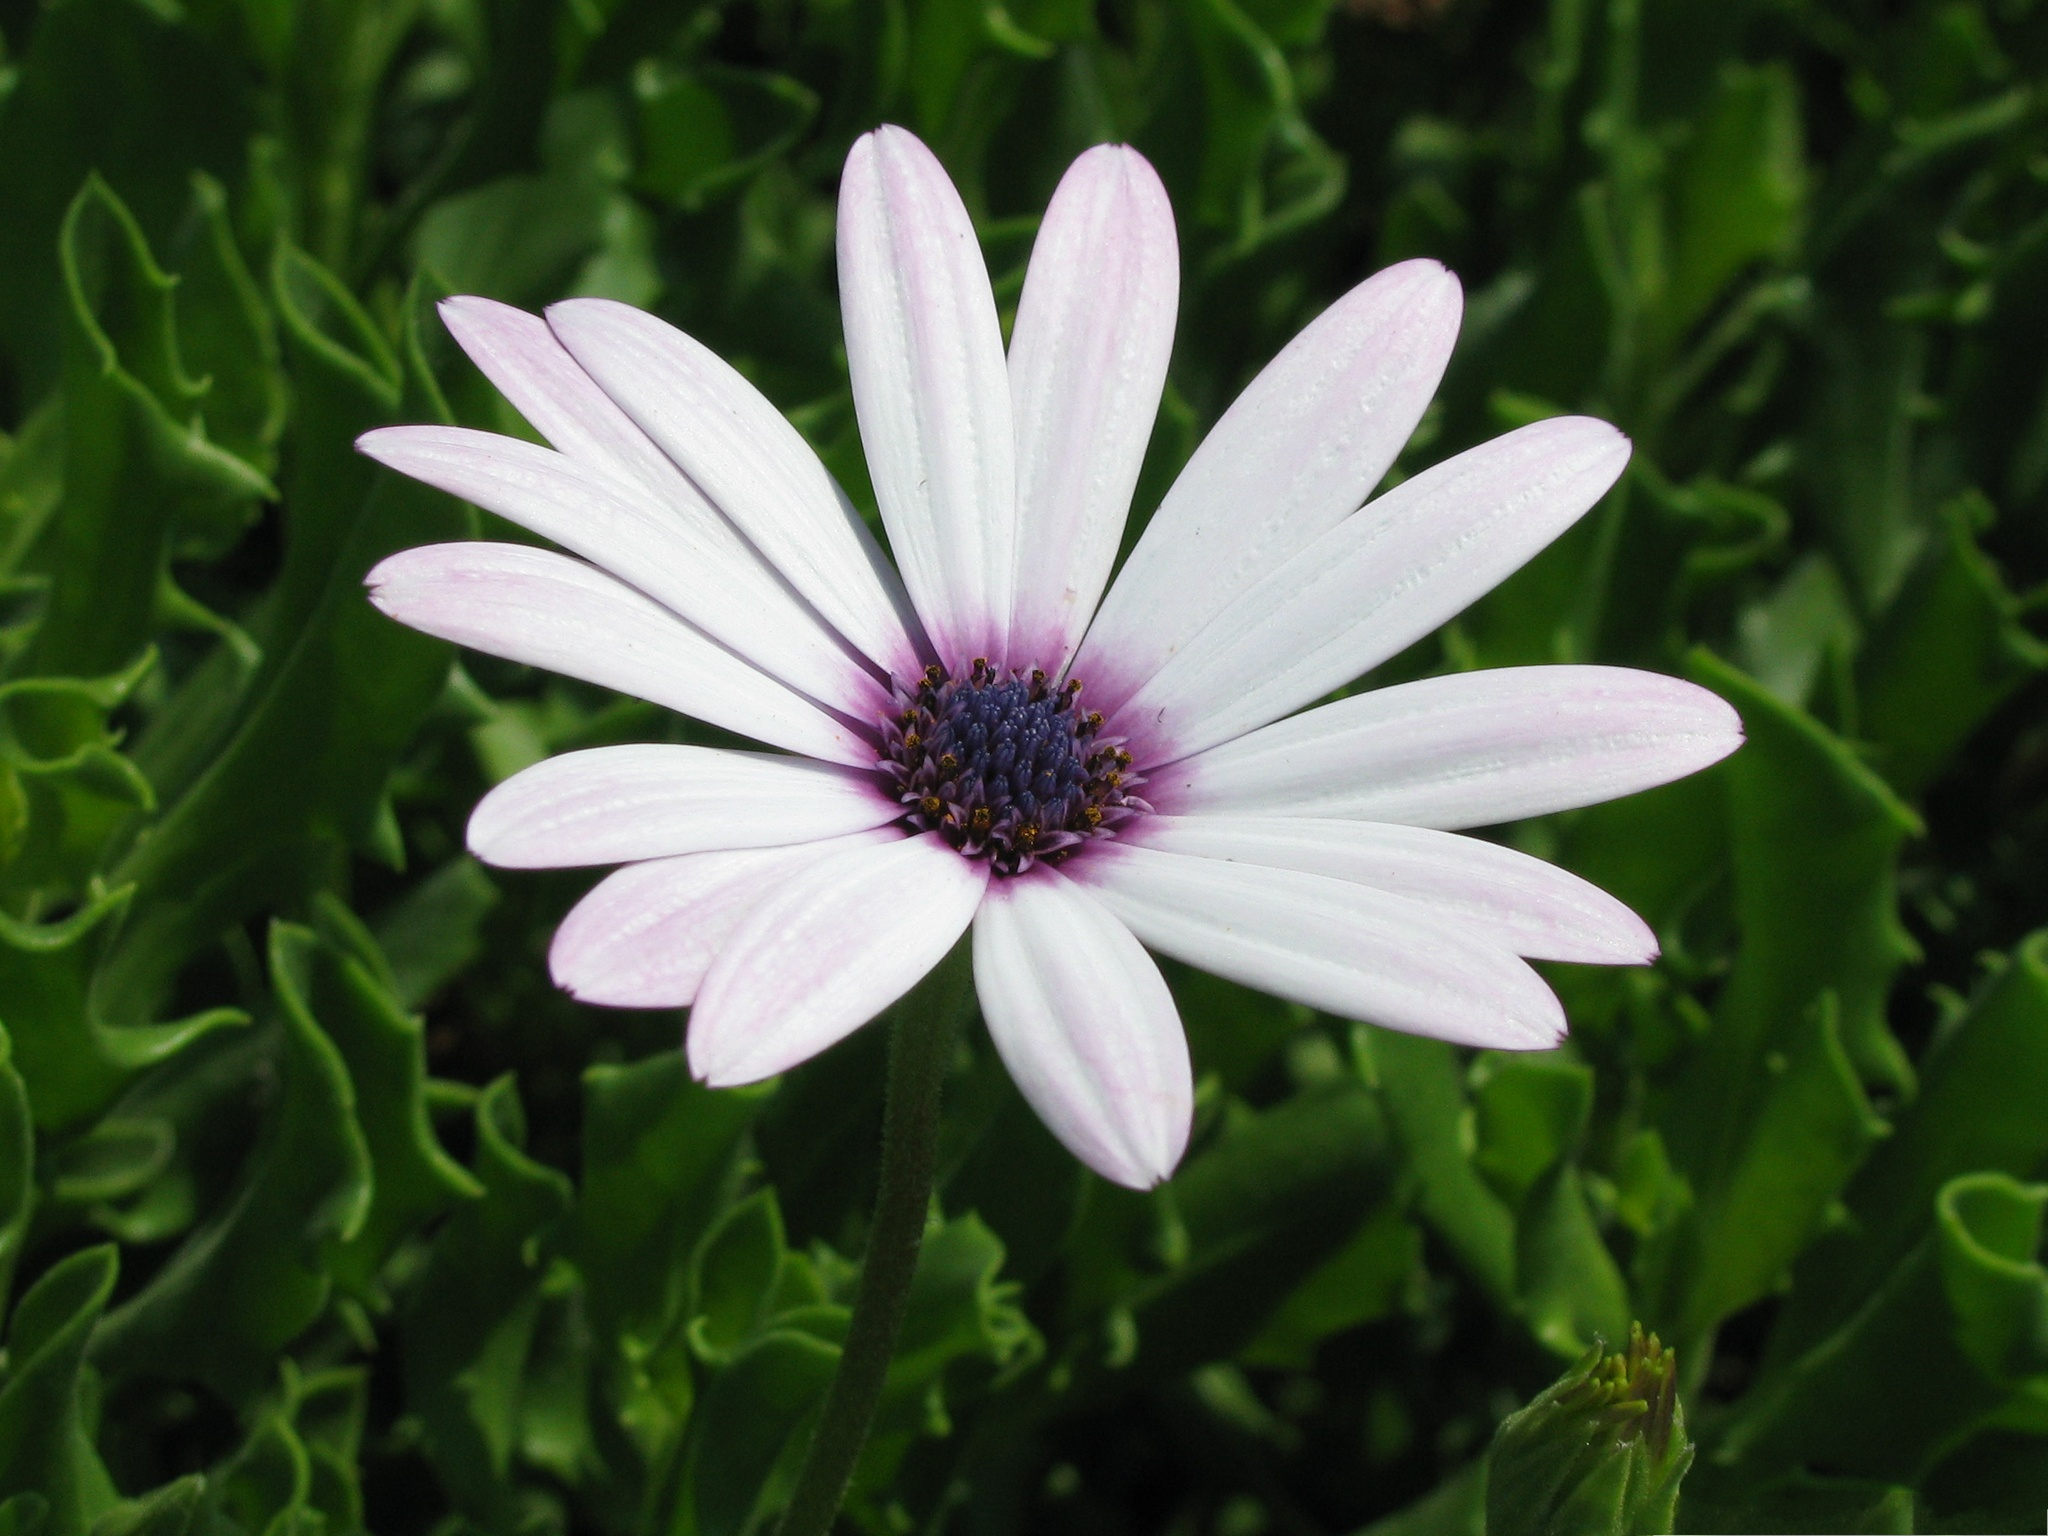 Cape Daisy Flowers White Small Flower In Bloom Green Grass And